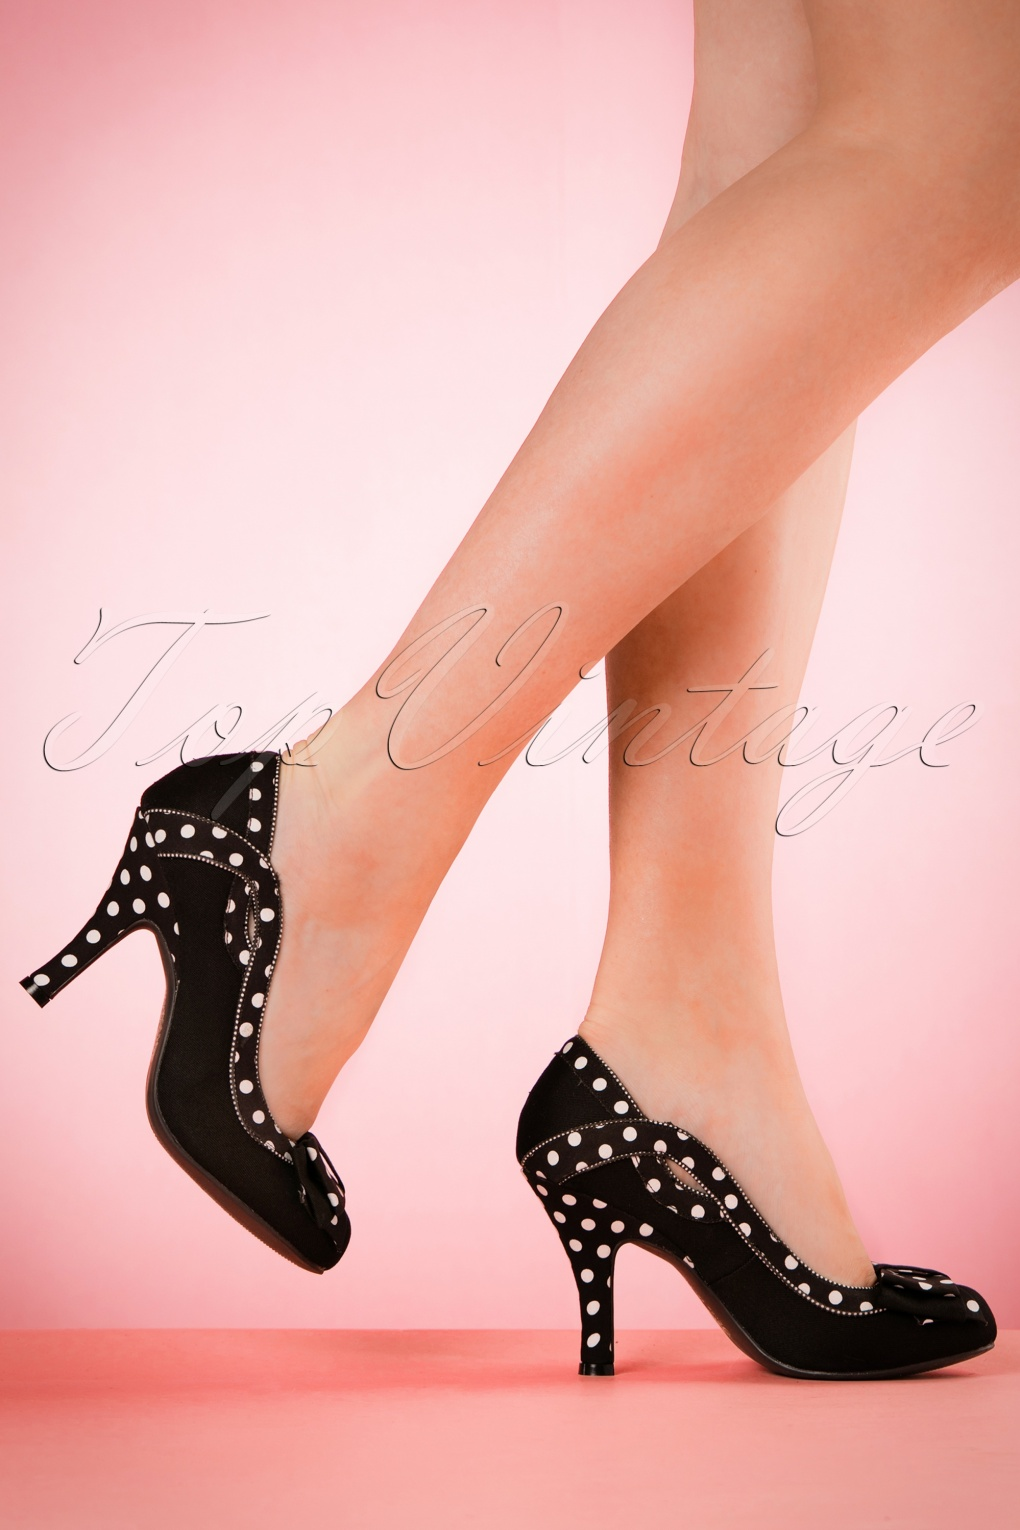 1960s Style Shoes 60s Ivy Polkadot Pumps in Black £29.34 AT vintagedancer.com